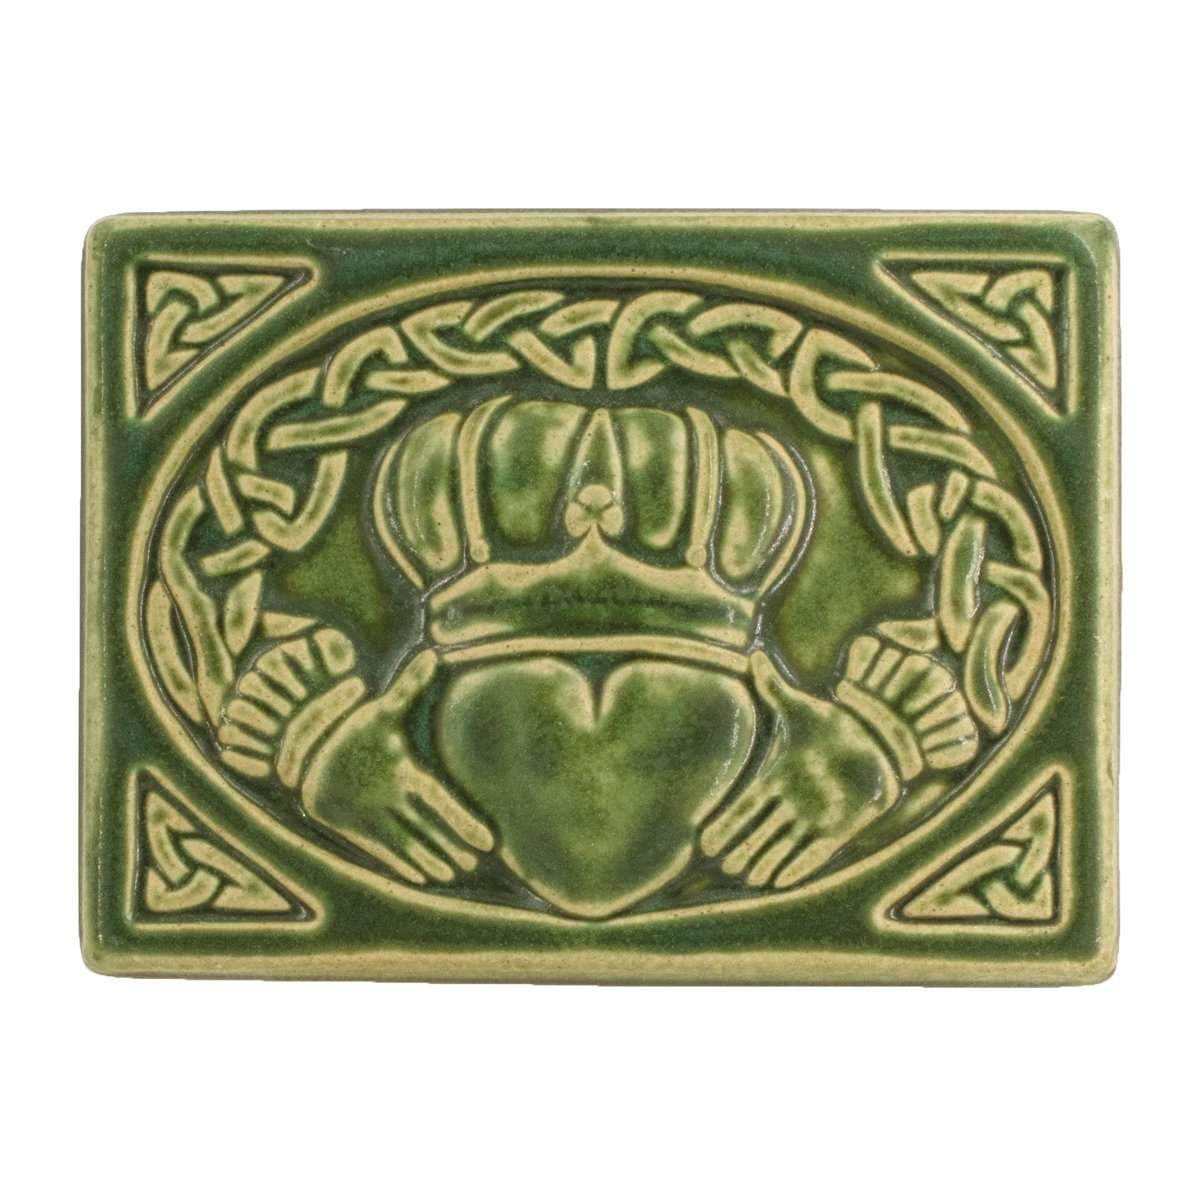 6x8 Claddagh Pewabic Tile - Leaf